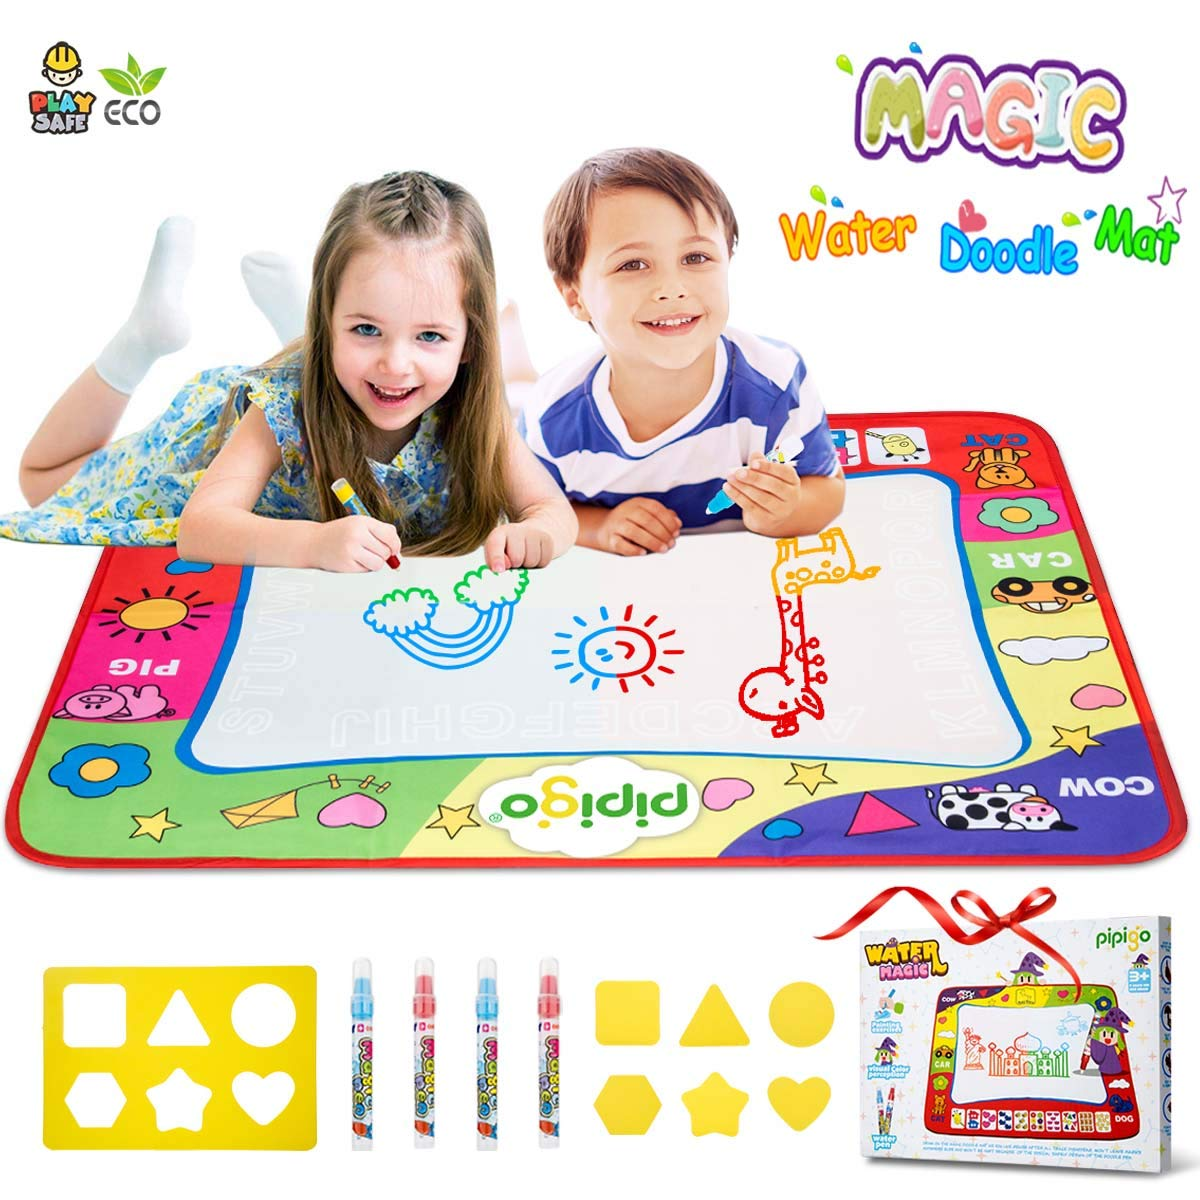 Hommate Water Doodle Mat Color Drawing Mat Doodle with Water Only 32x24in 4 Pens 6 Molds Toddler Gifts Toys for 2 3 4 Year Old Girls Boys Gift Age 2 3 with Color Box (PPG mat-08)